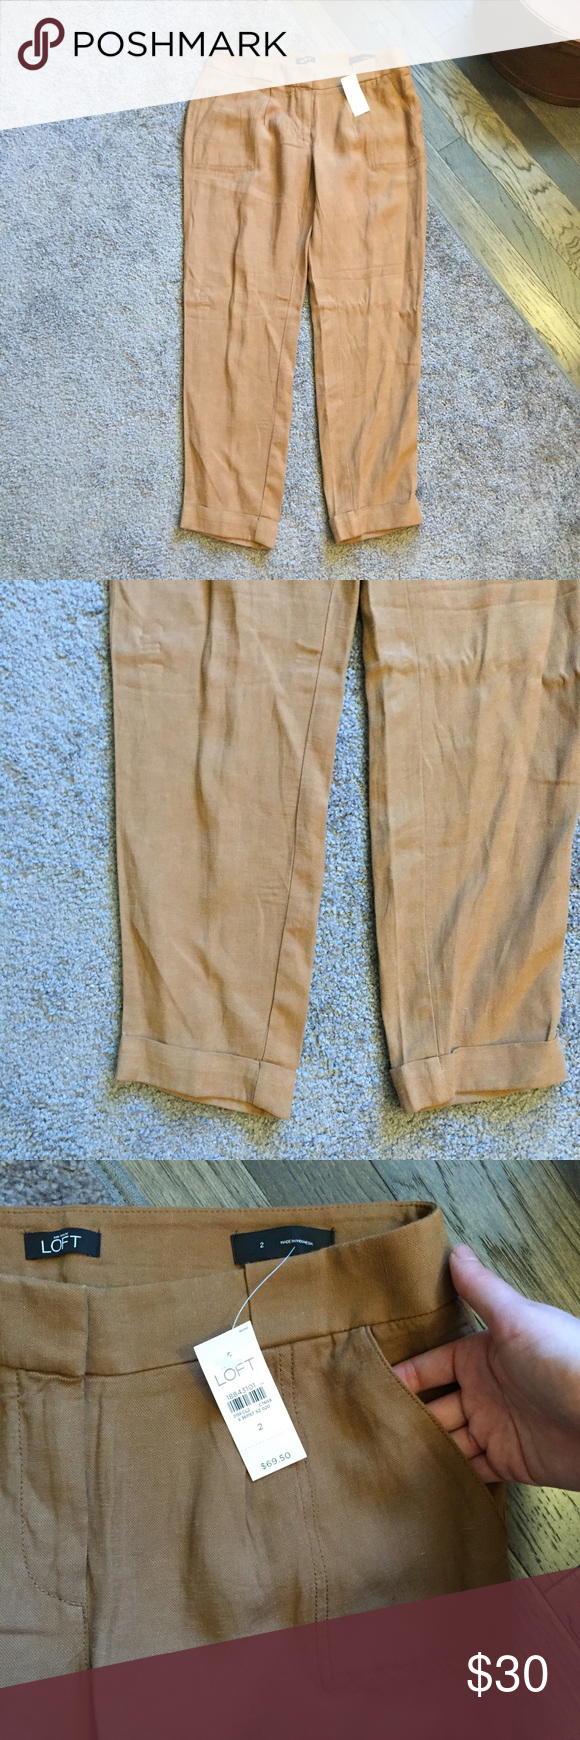 🆕 Loft Brown Cuffed Straight Pants NWT Sz 2 ☀️ Brand new with tags! Thank you for looking! LOFT Pants Straight Leg